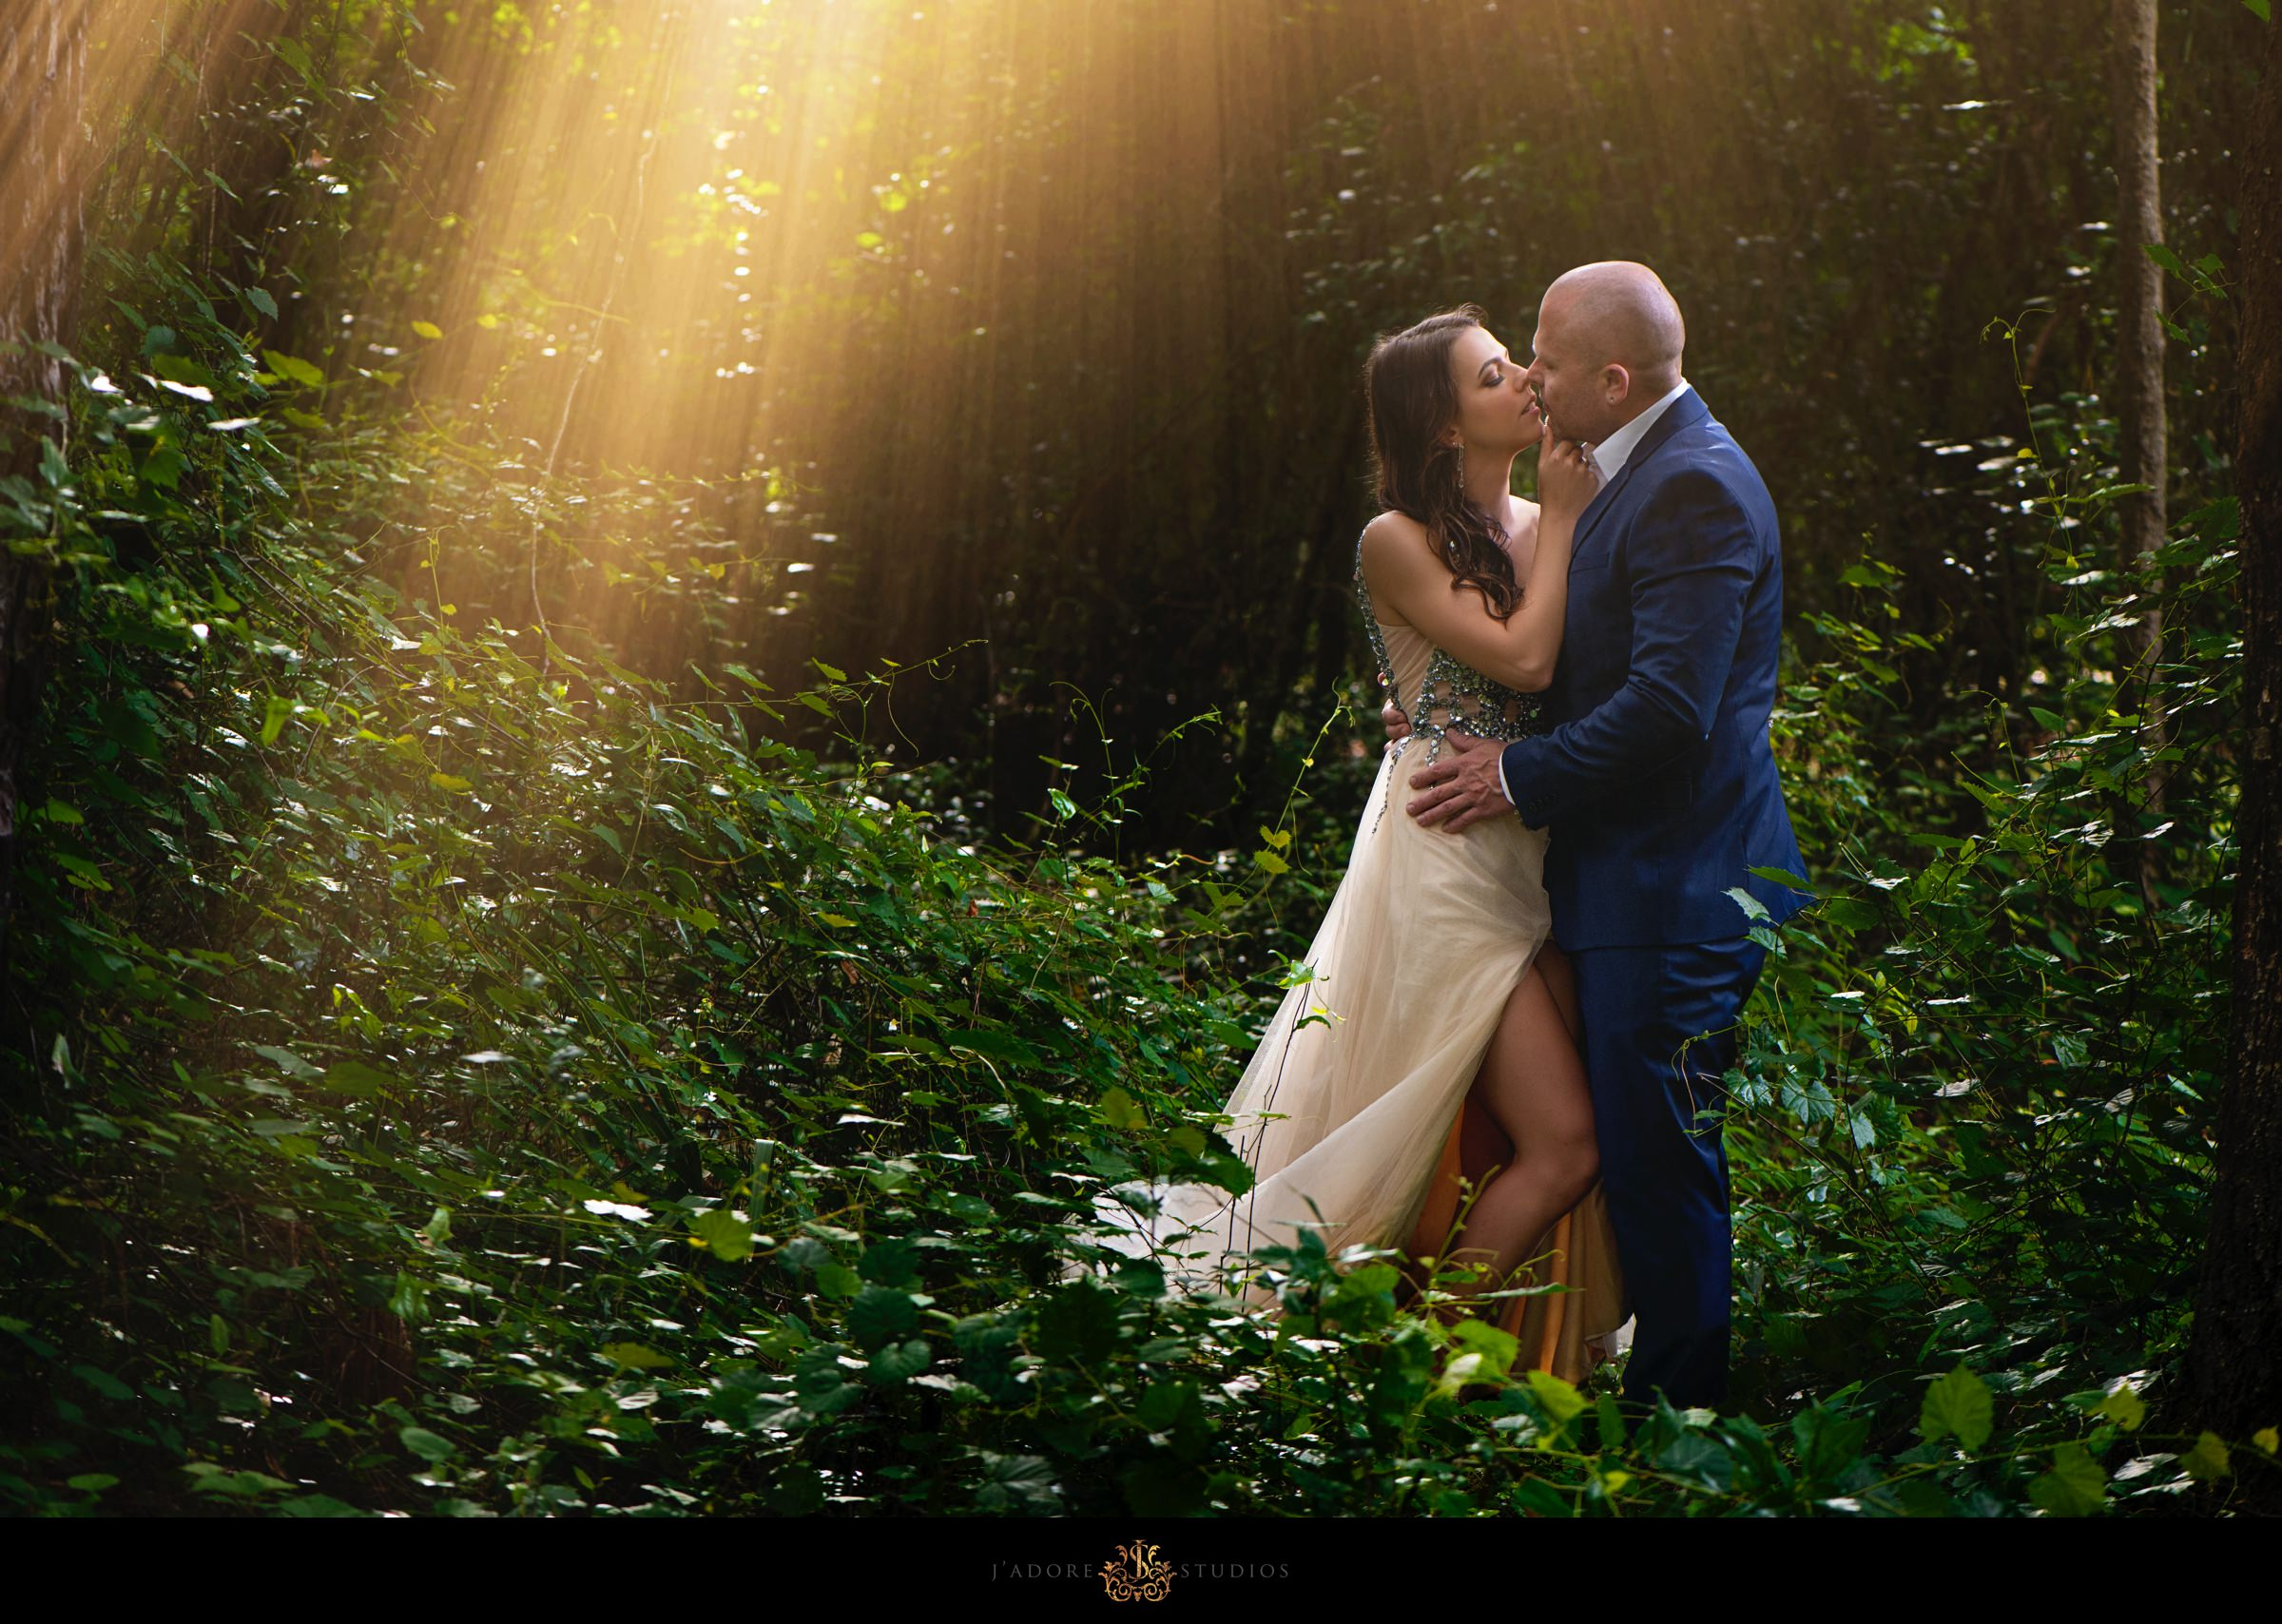 Couple kissing in the woods with sunshine ray on them